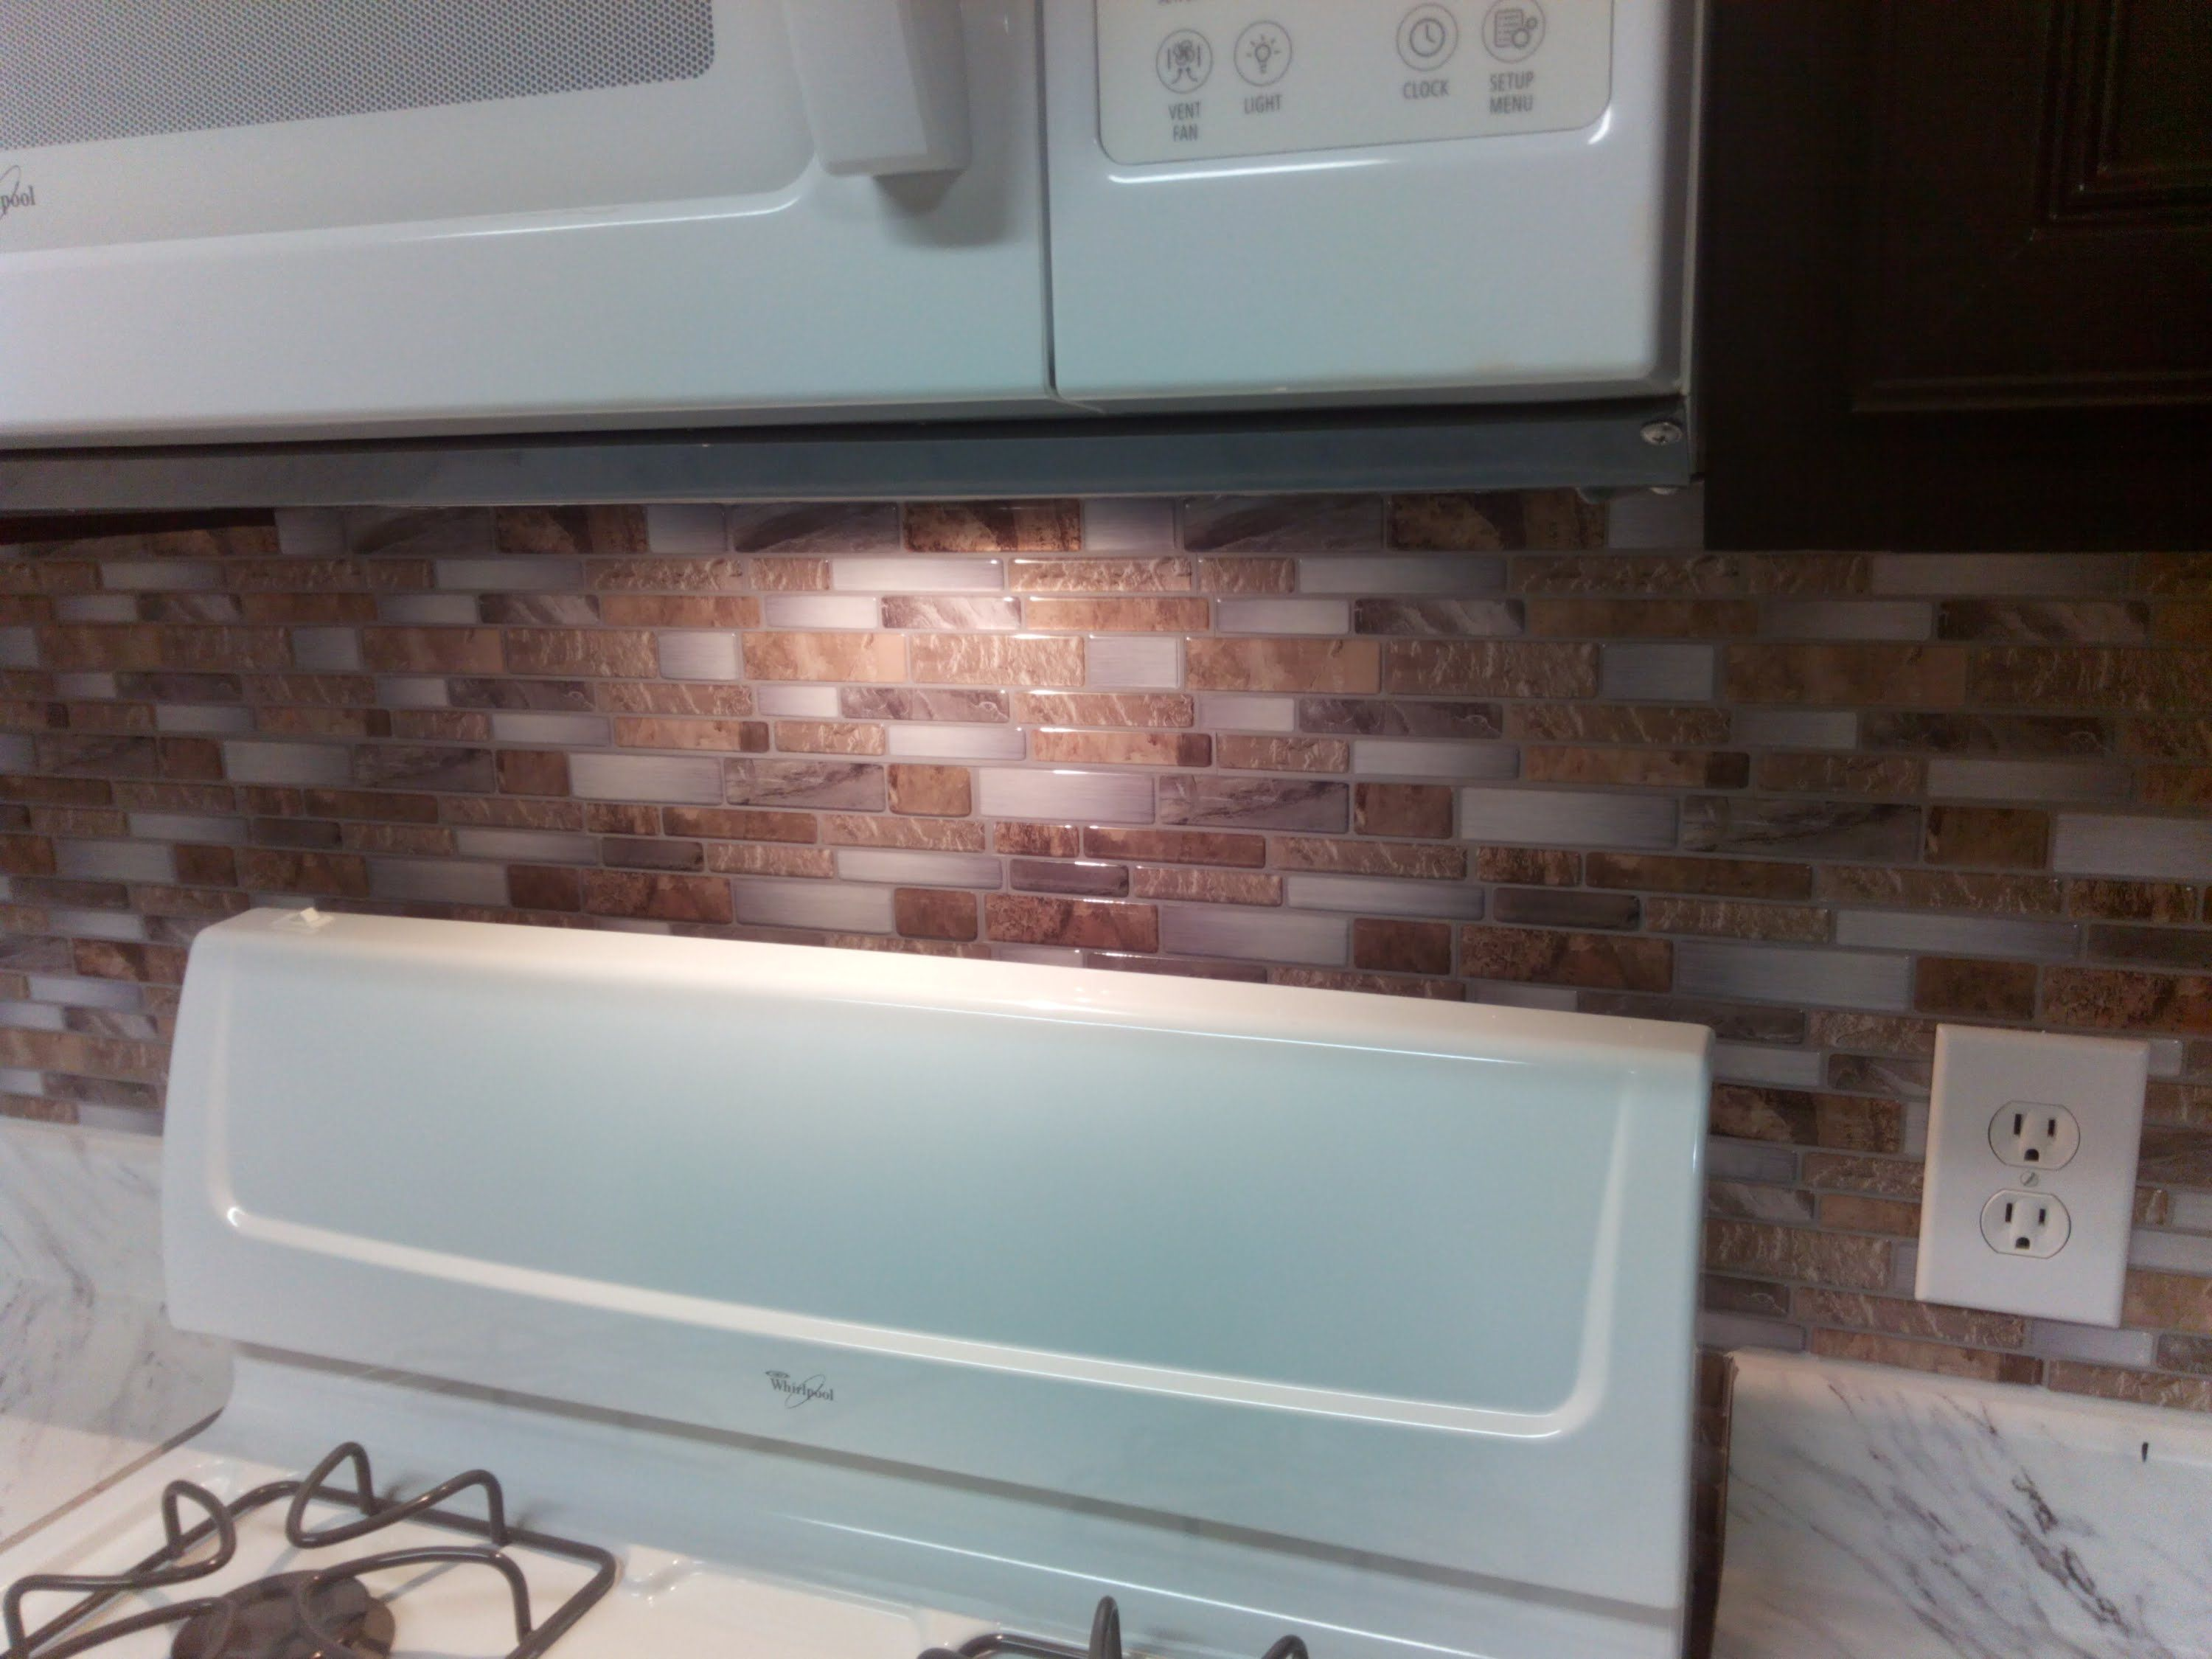 Backsplash - Peel and stick mosaic wall tile installation - YouTube ...